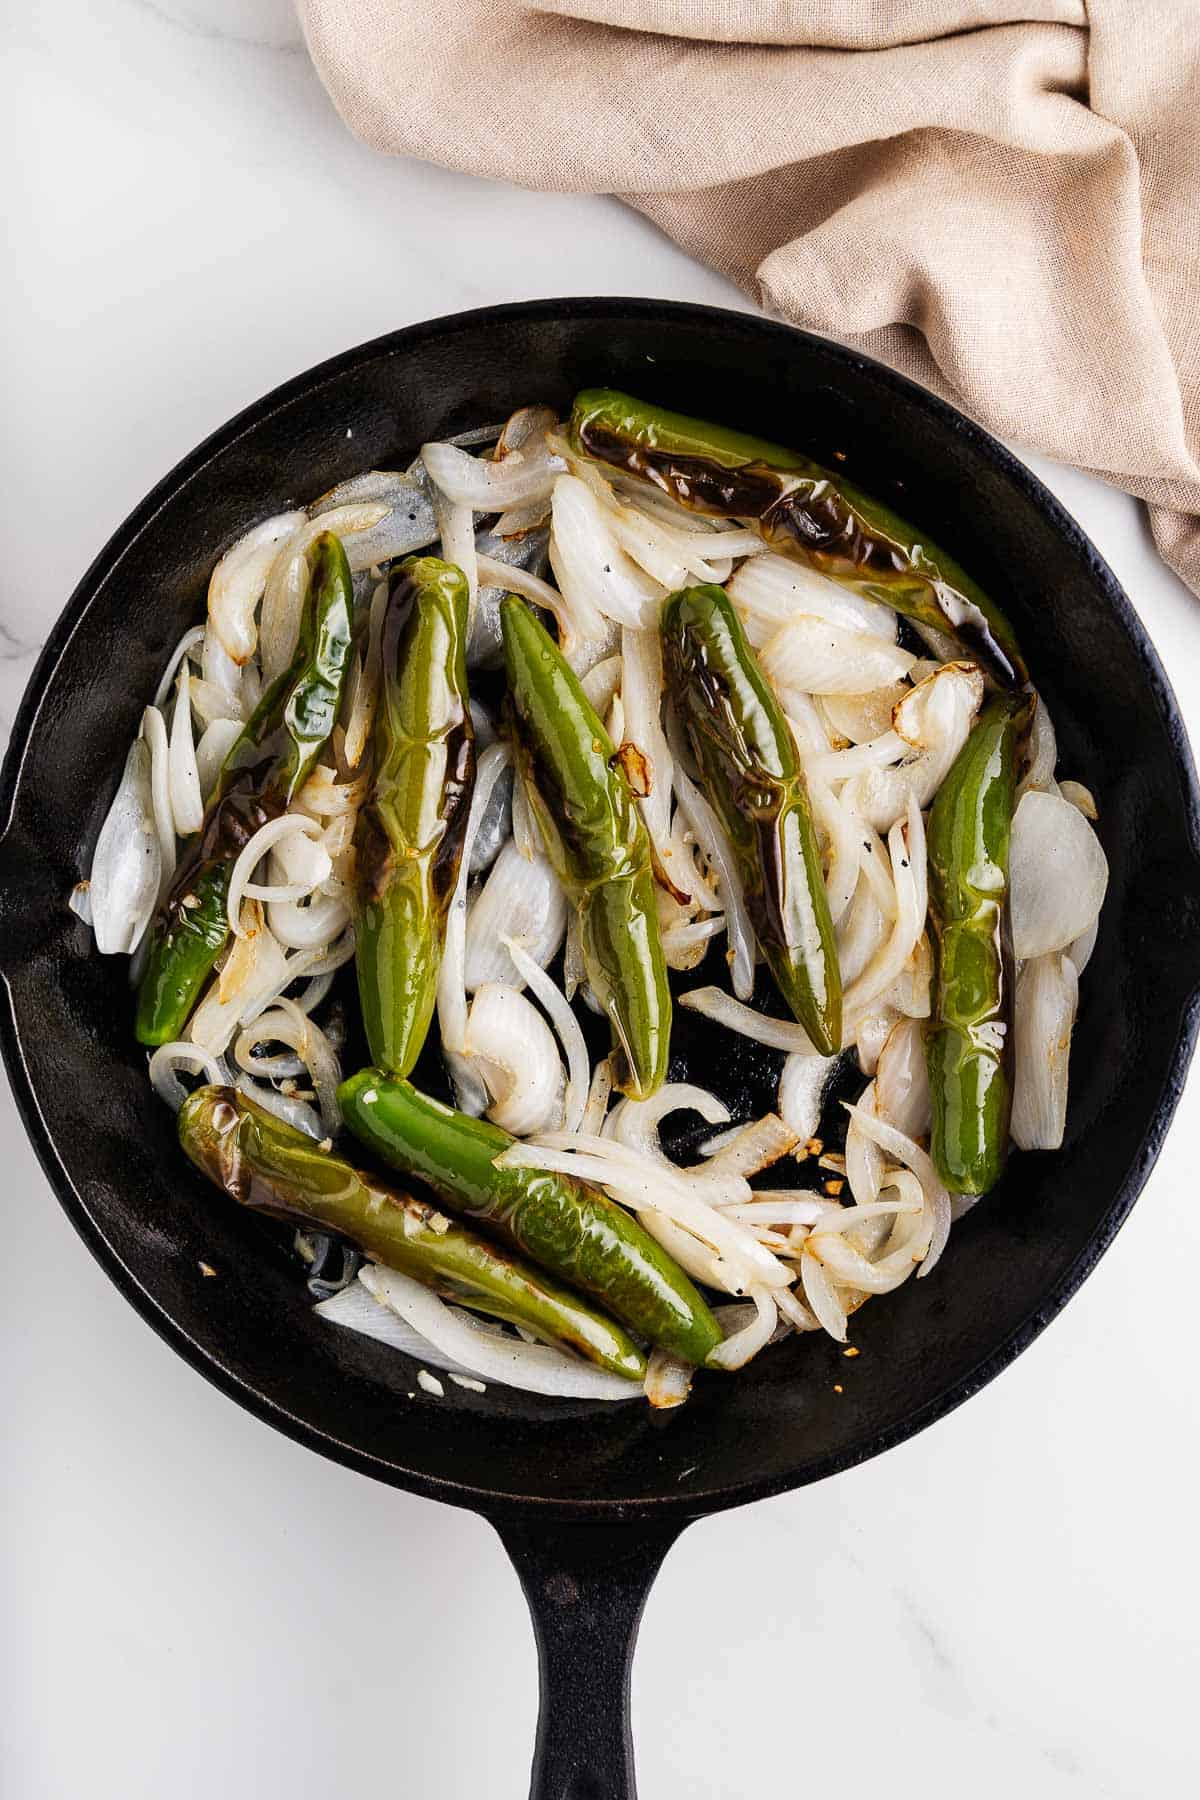 Chiles, Onions, and Garlic in a Skillet